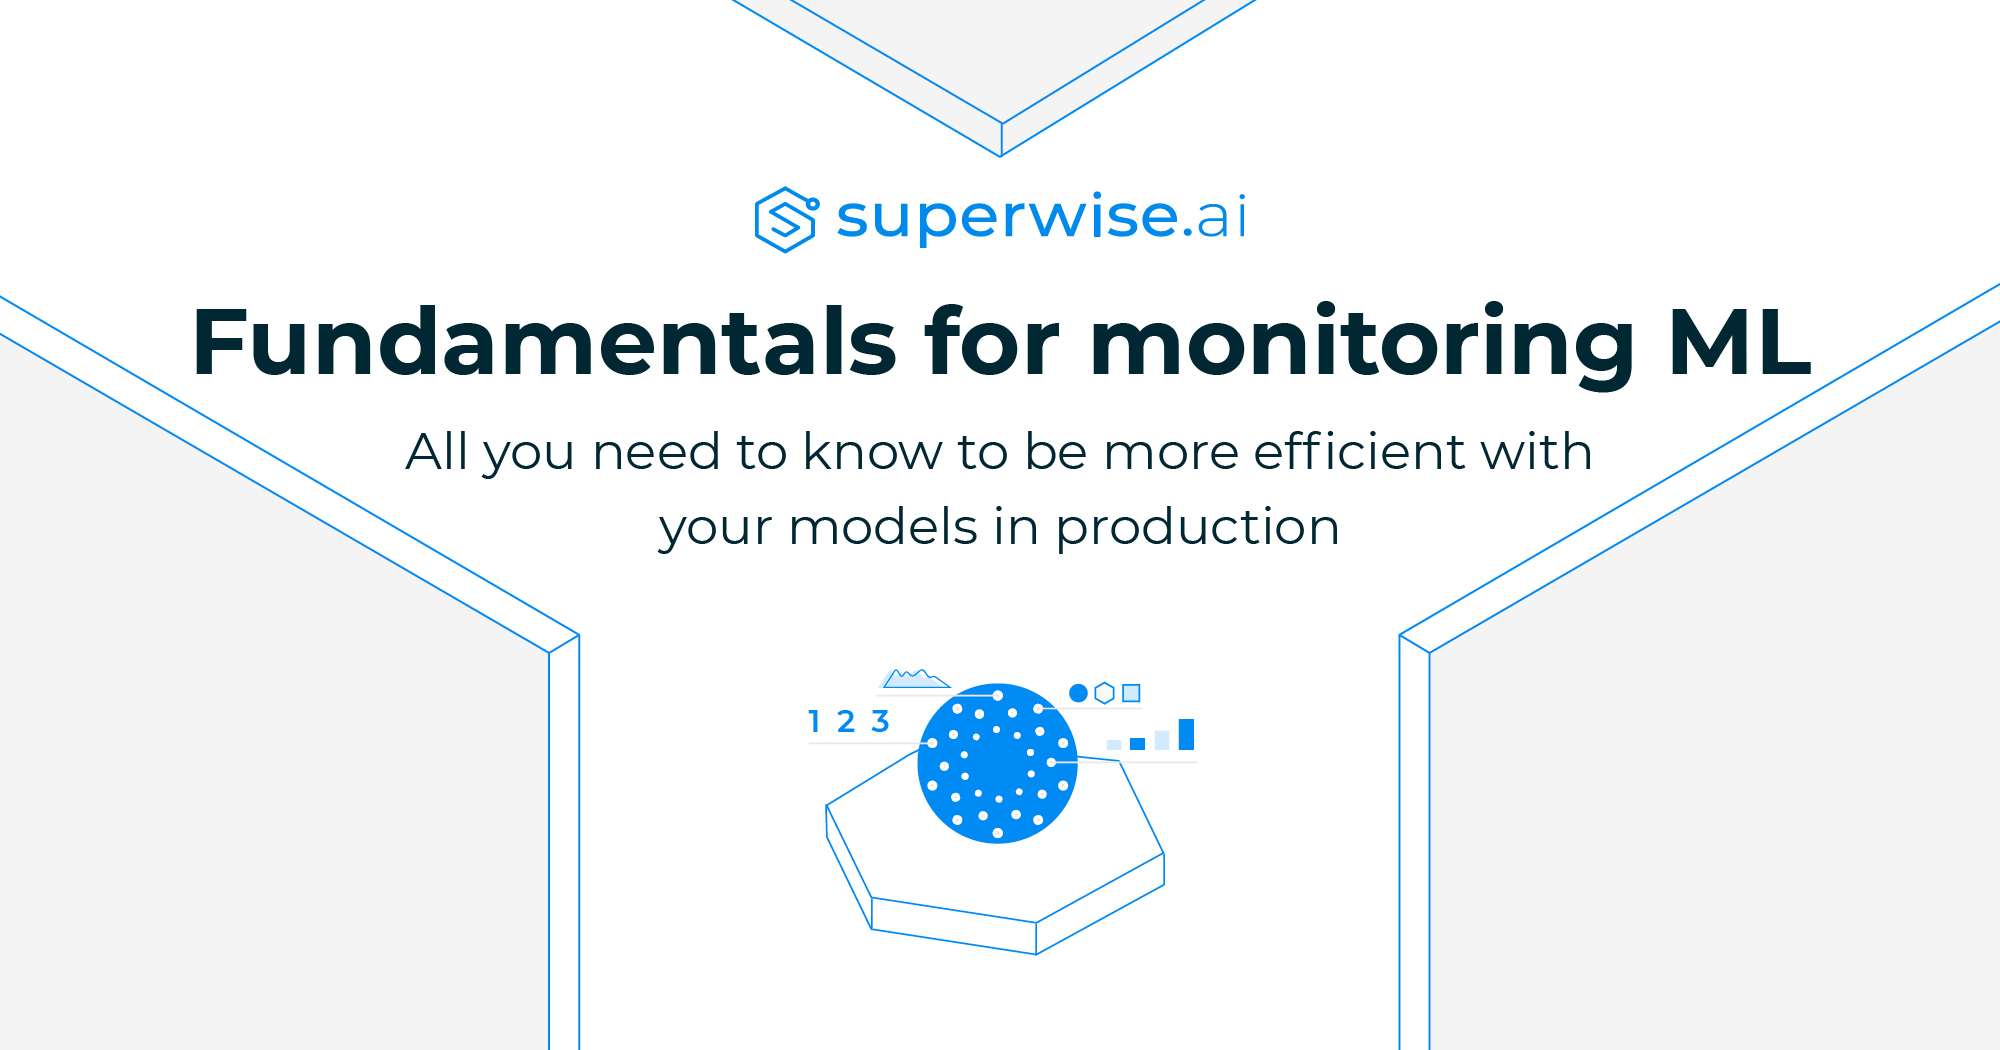 Powering Up Your ML Monitoring in Production Now